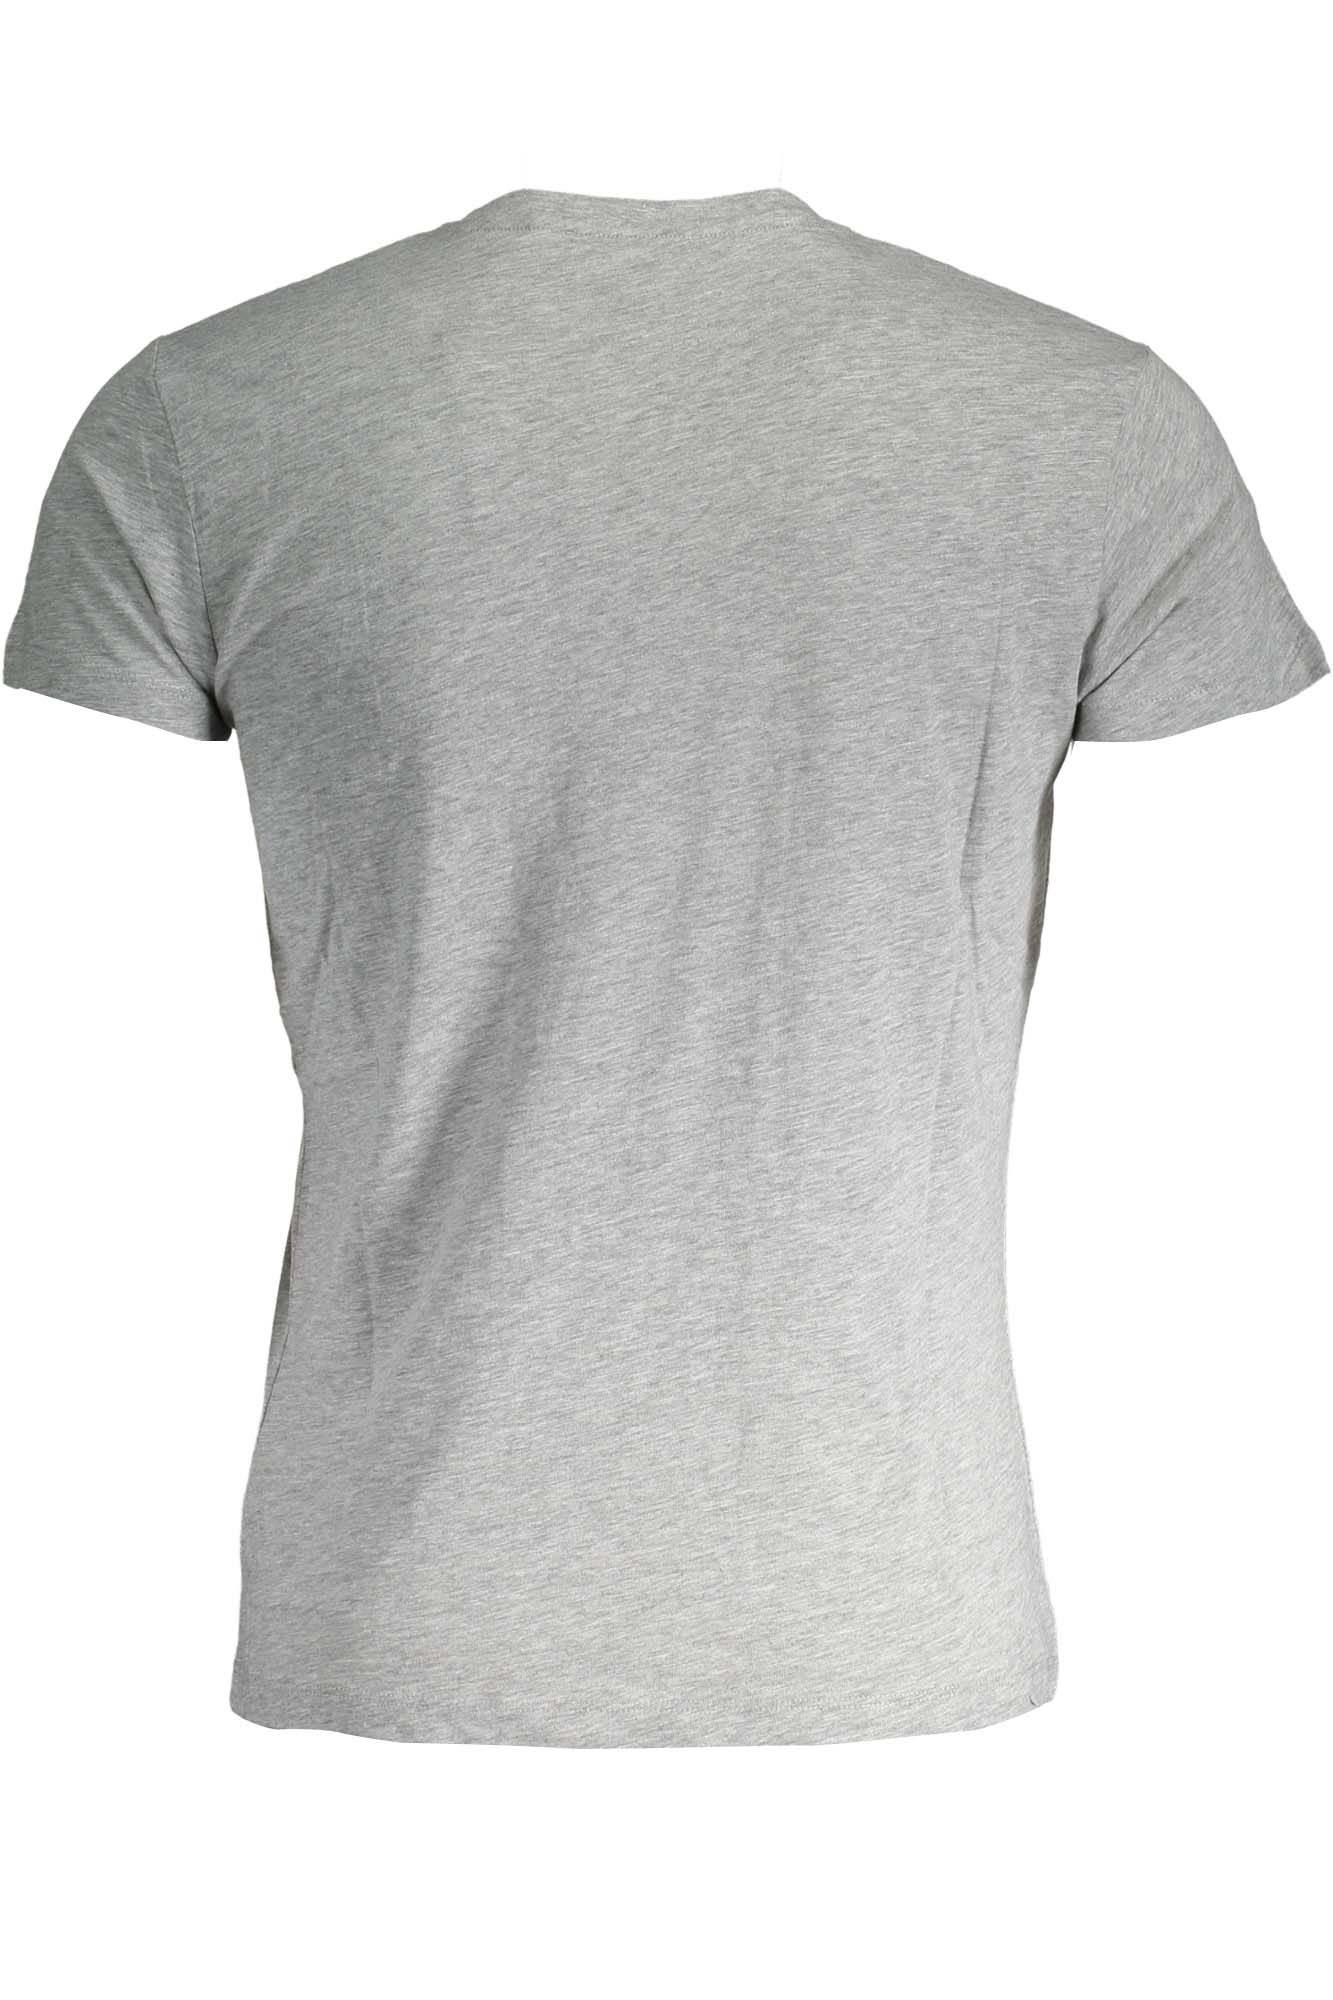 Cheap For Sale SHIRTS - Shirts Yes-Zee Visit New Pick A Best Sale Online Cheap New Styles ftrGp